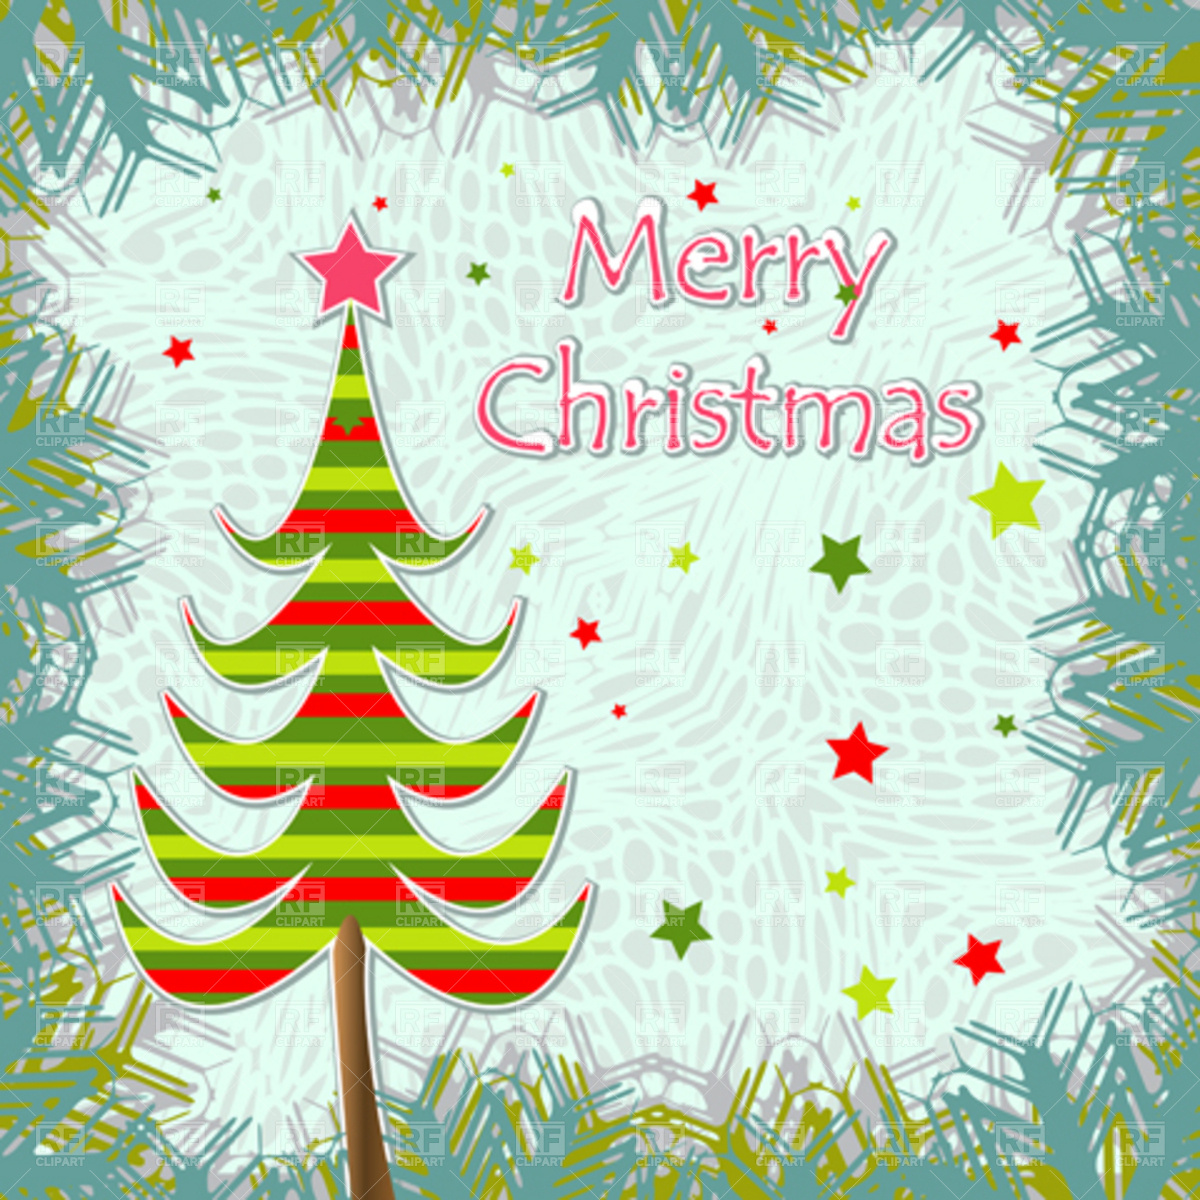 12 Christmas Greeting Cards Template Images